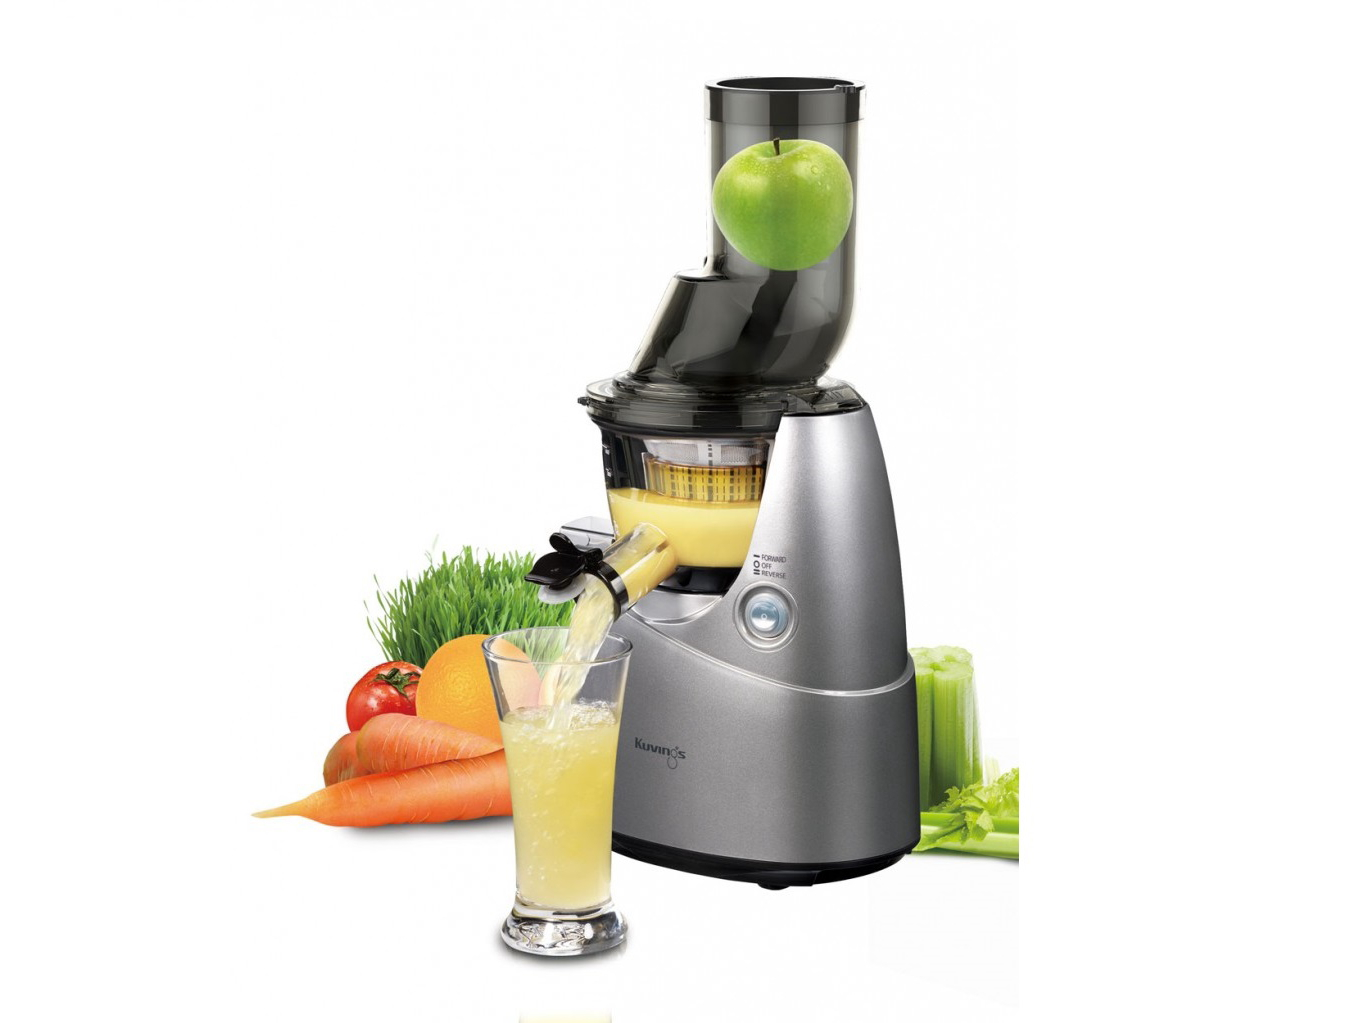 Kuvings Slow Juicer Test : Apfel-Zimt-Sauce auf gedrehten Bandnudeln ? The vegetarian Diaries